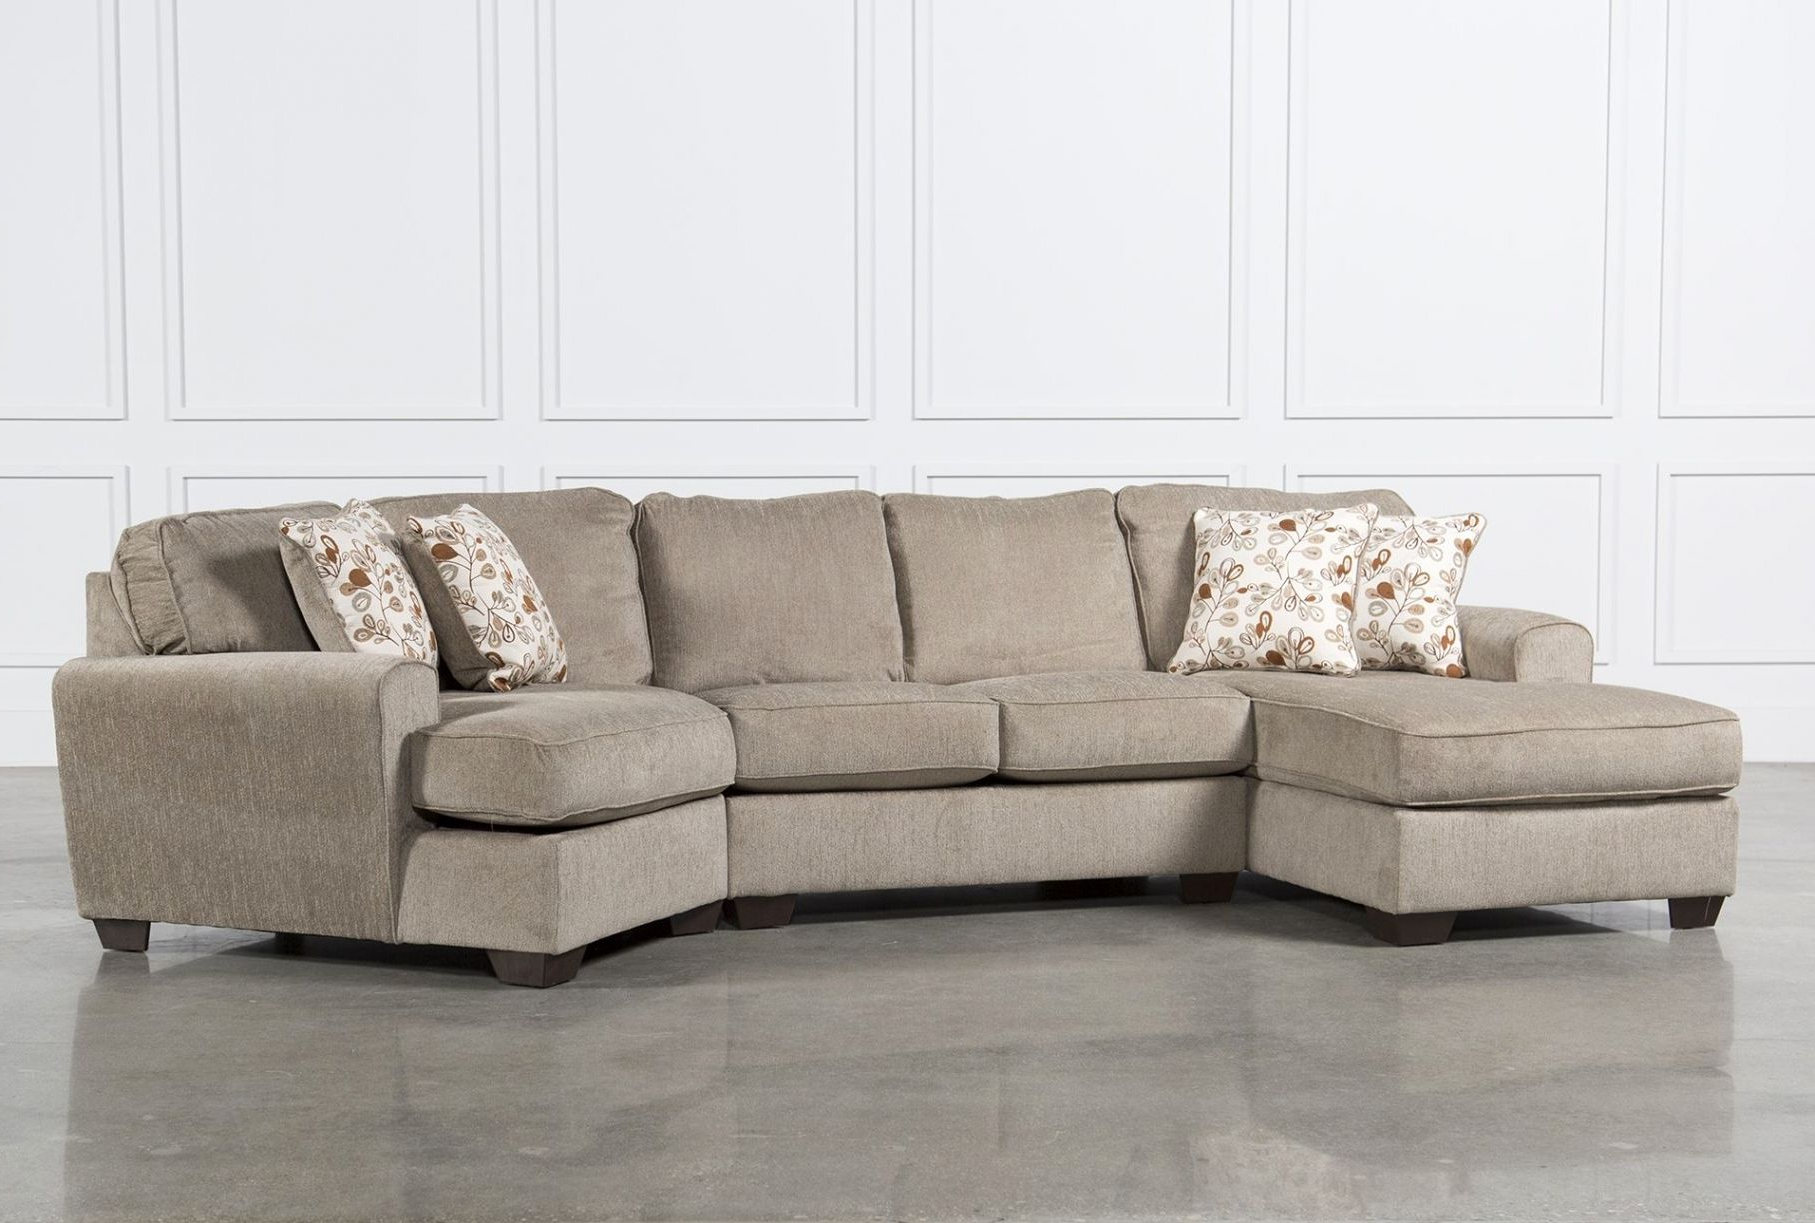 Lovely Sectional Sofas With Recliners And Cup Holders Photographs For Latest Sierra Down 3 Piece Sectionals With Laf Chaise (View 2 of 20)